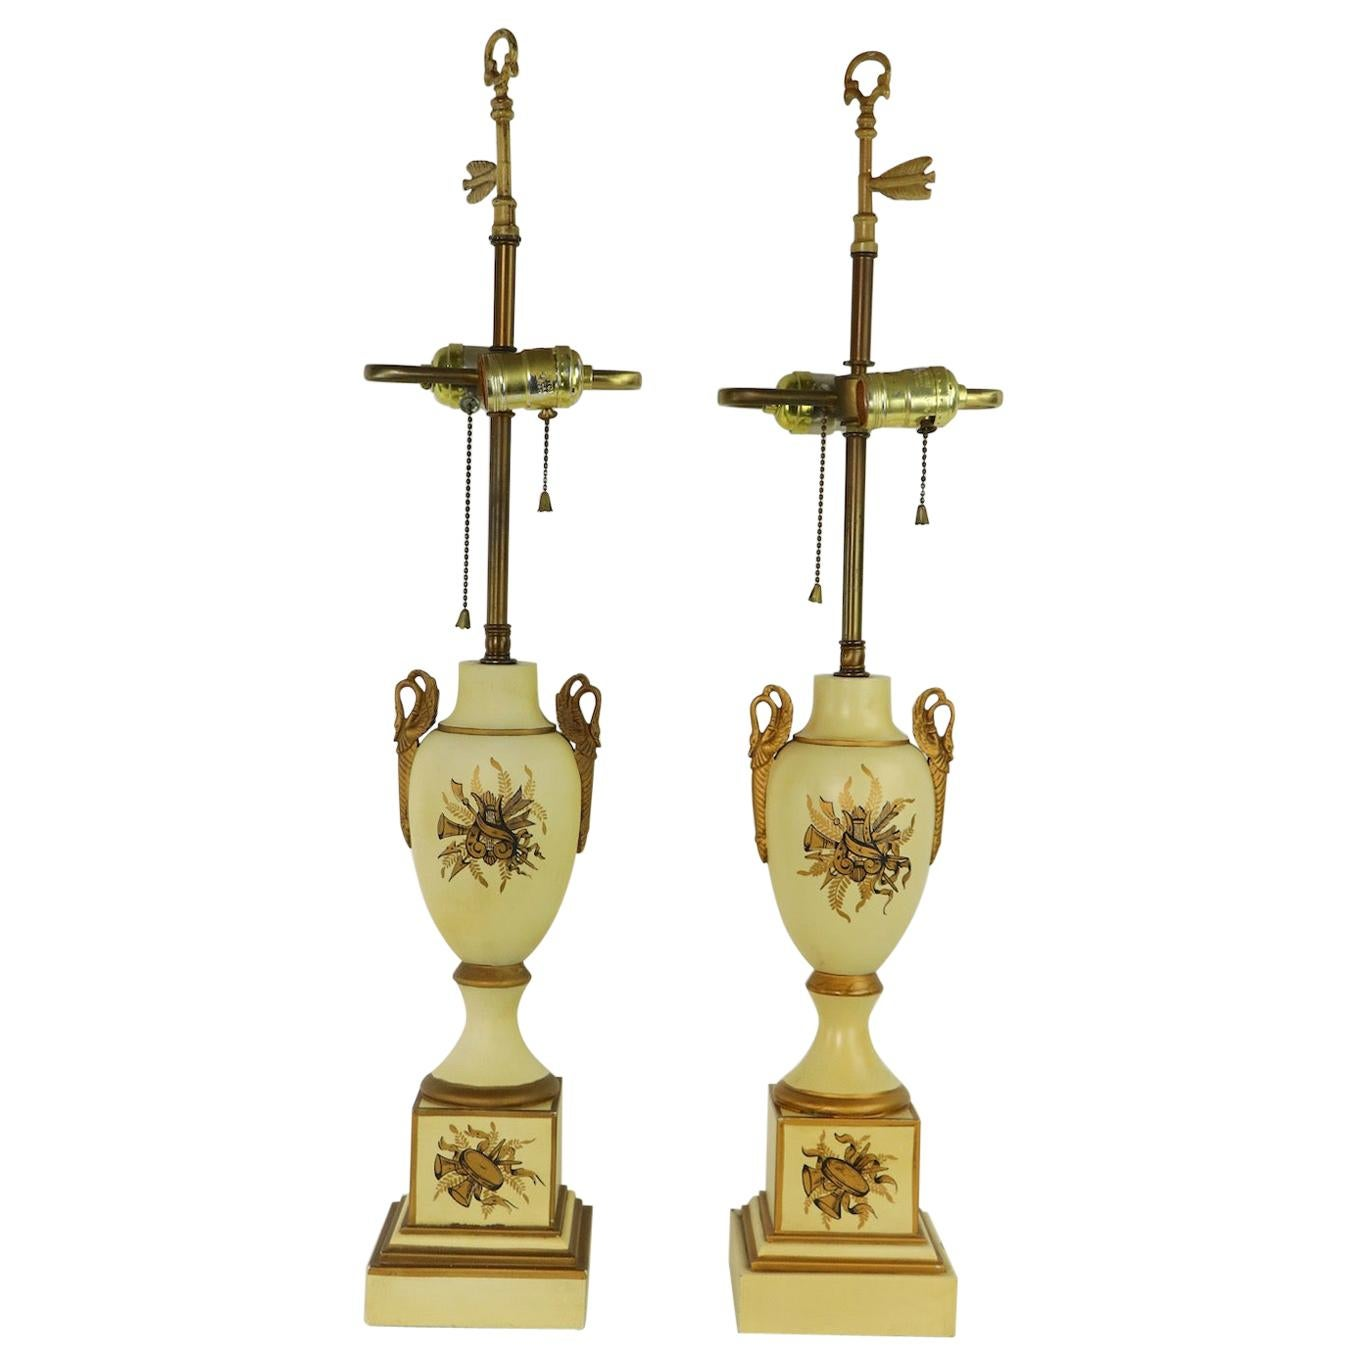 Pair of Tole Decorated French Empire Revival Table Lamps by Tyndale